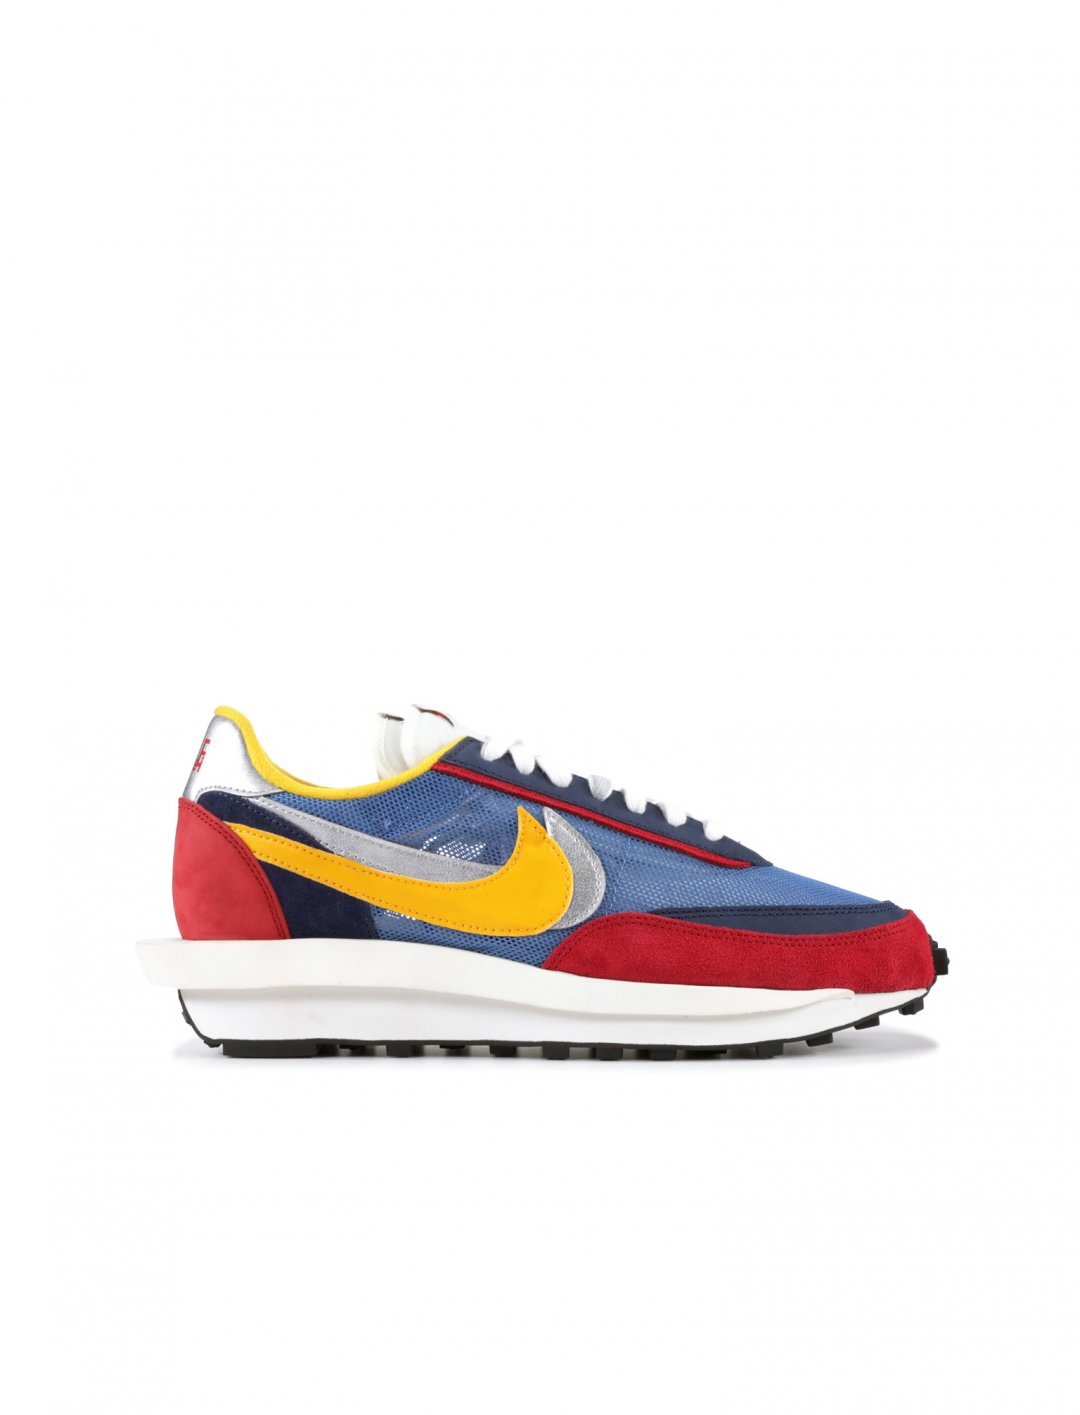 "LDV Waffle Sneakers {""id"":12,""product_section_id"":1,""name"":""Shoes"",""order"":12} Nike x Sacai"